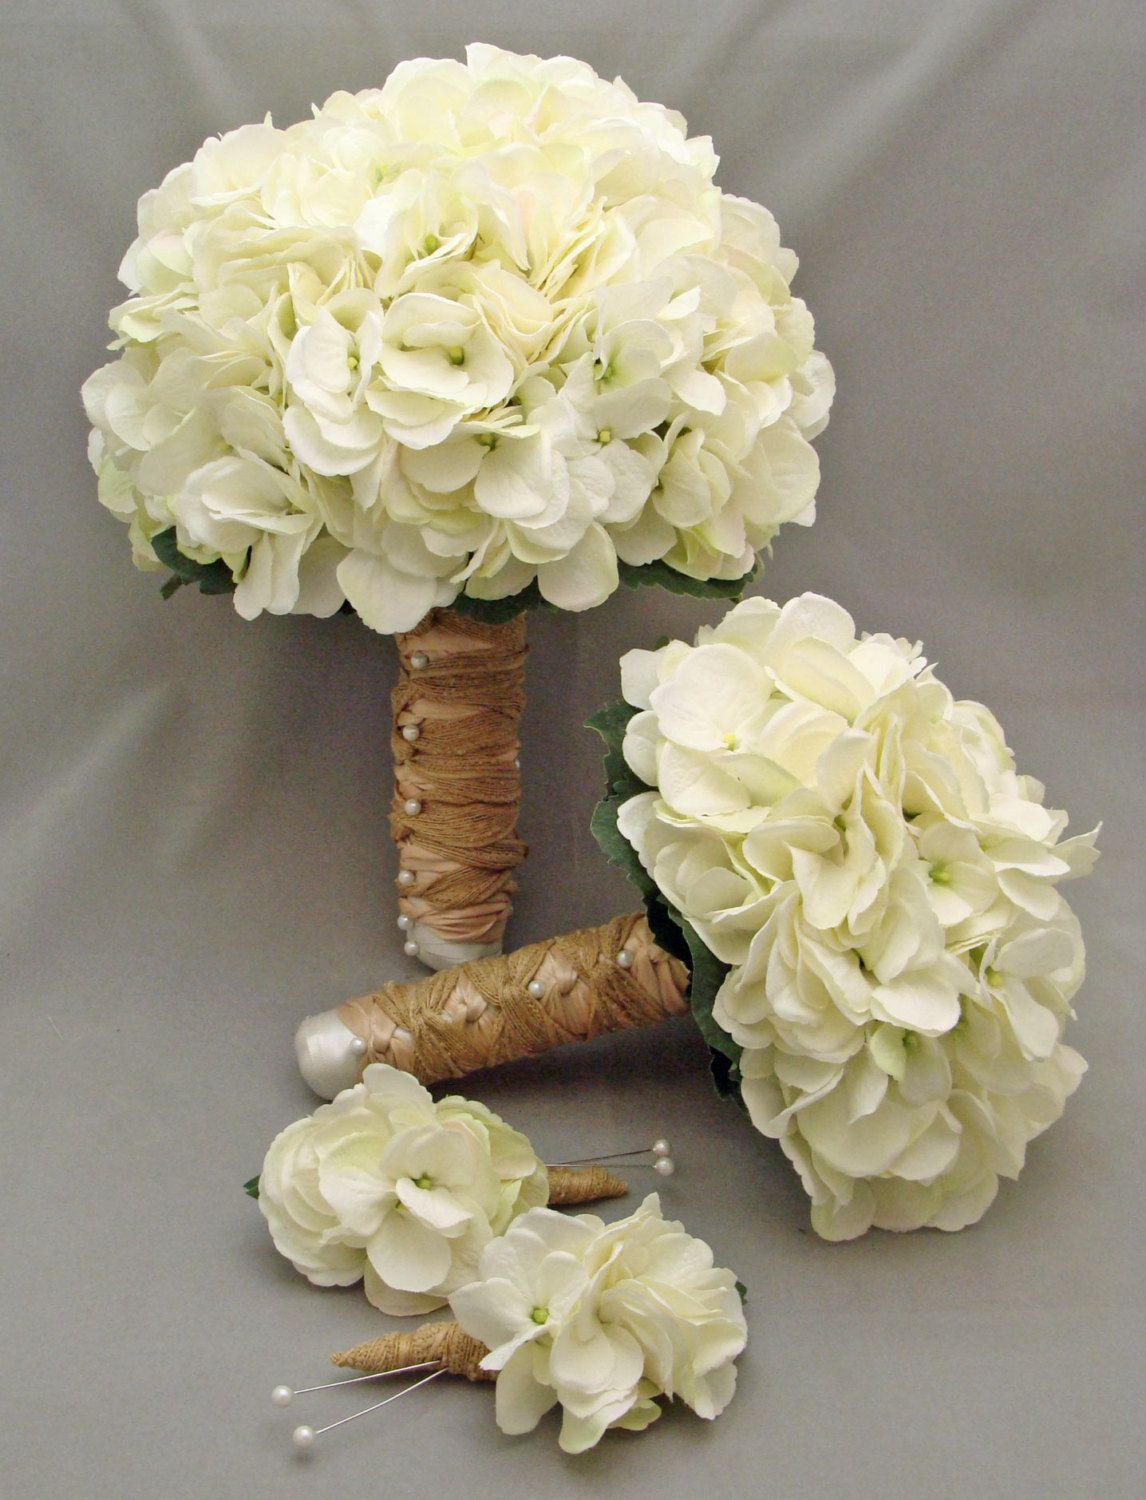 White Silk Hydrangea Bridal Bridesmaid Bouquet Grooms Best Man